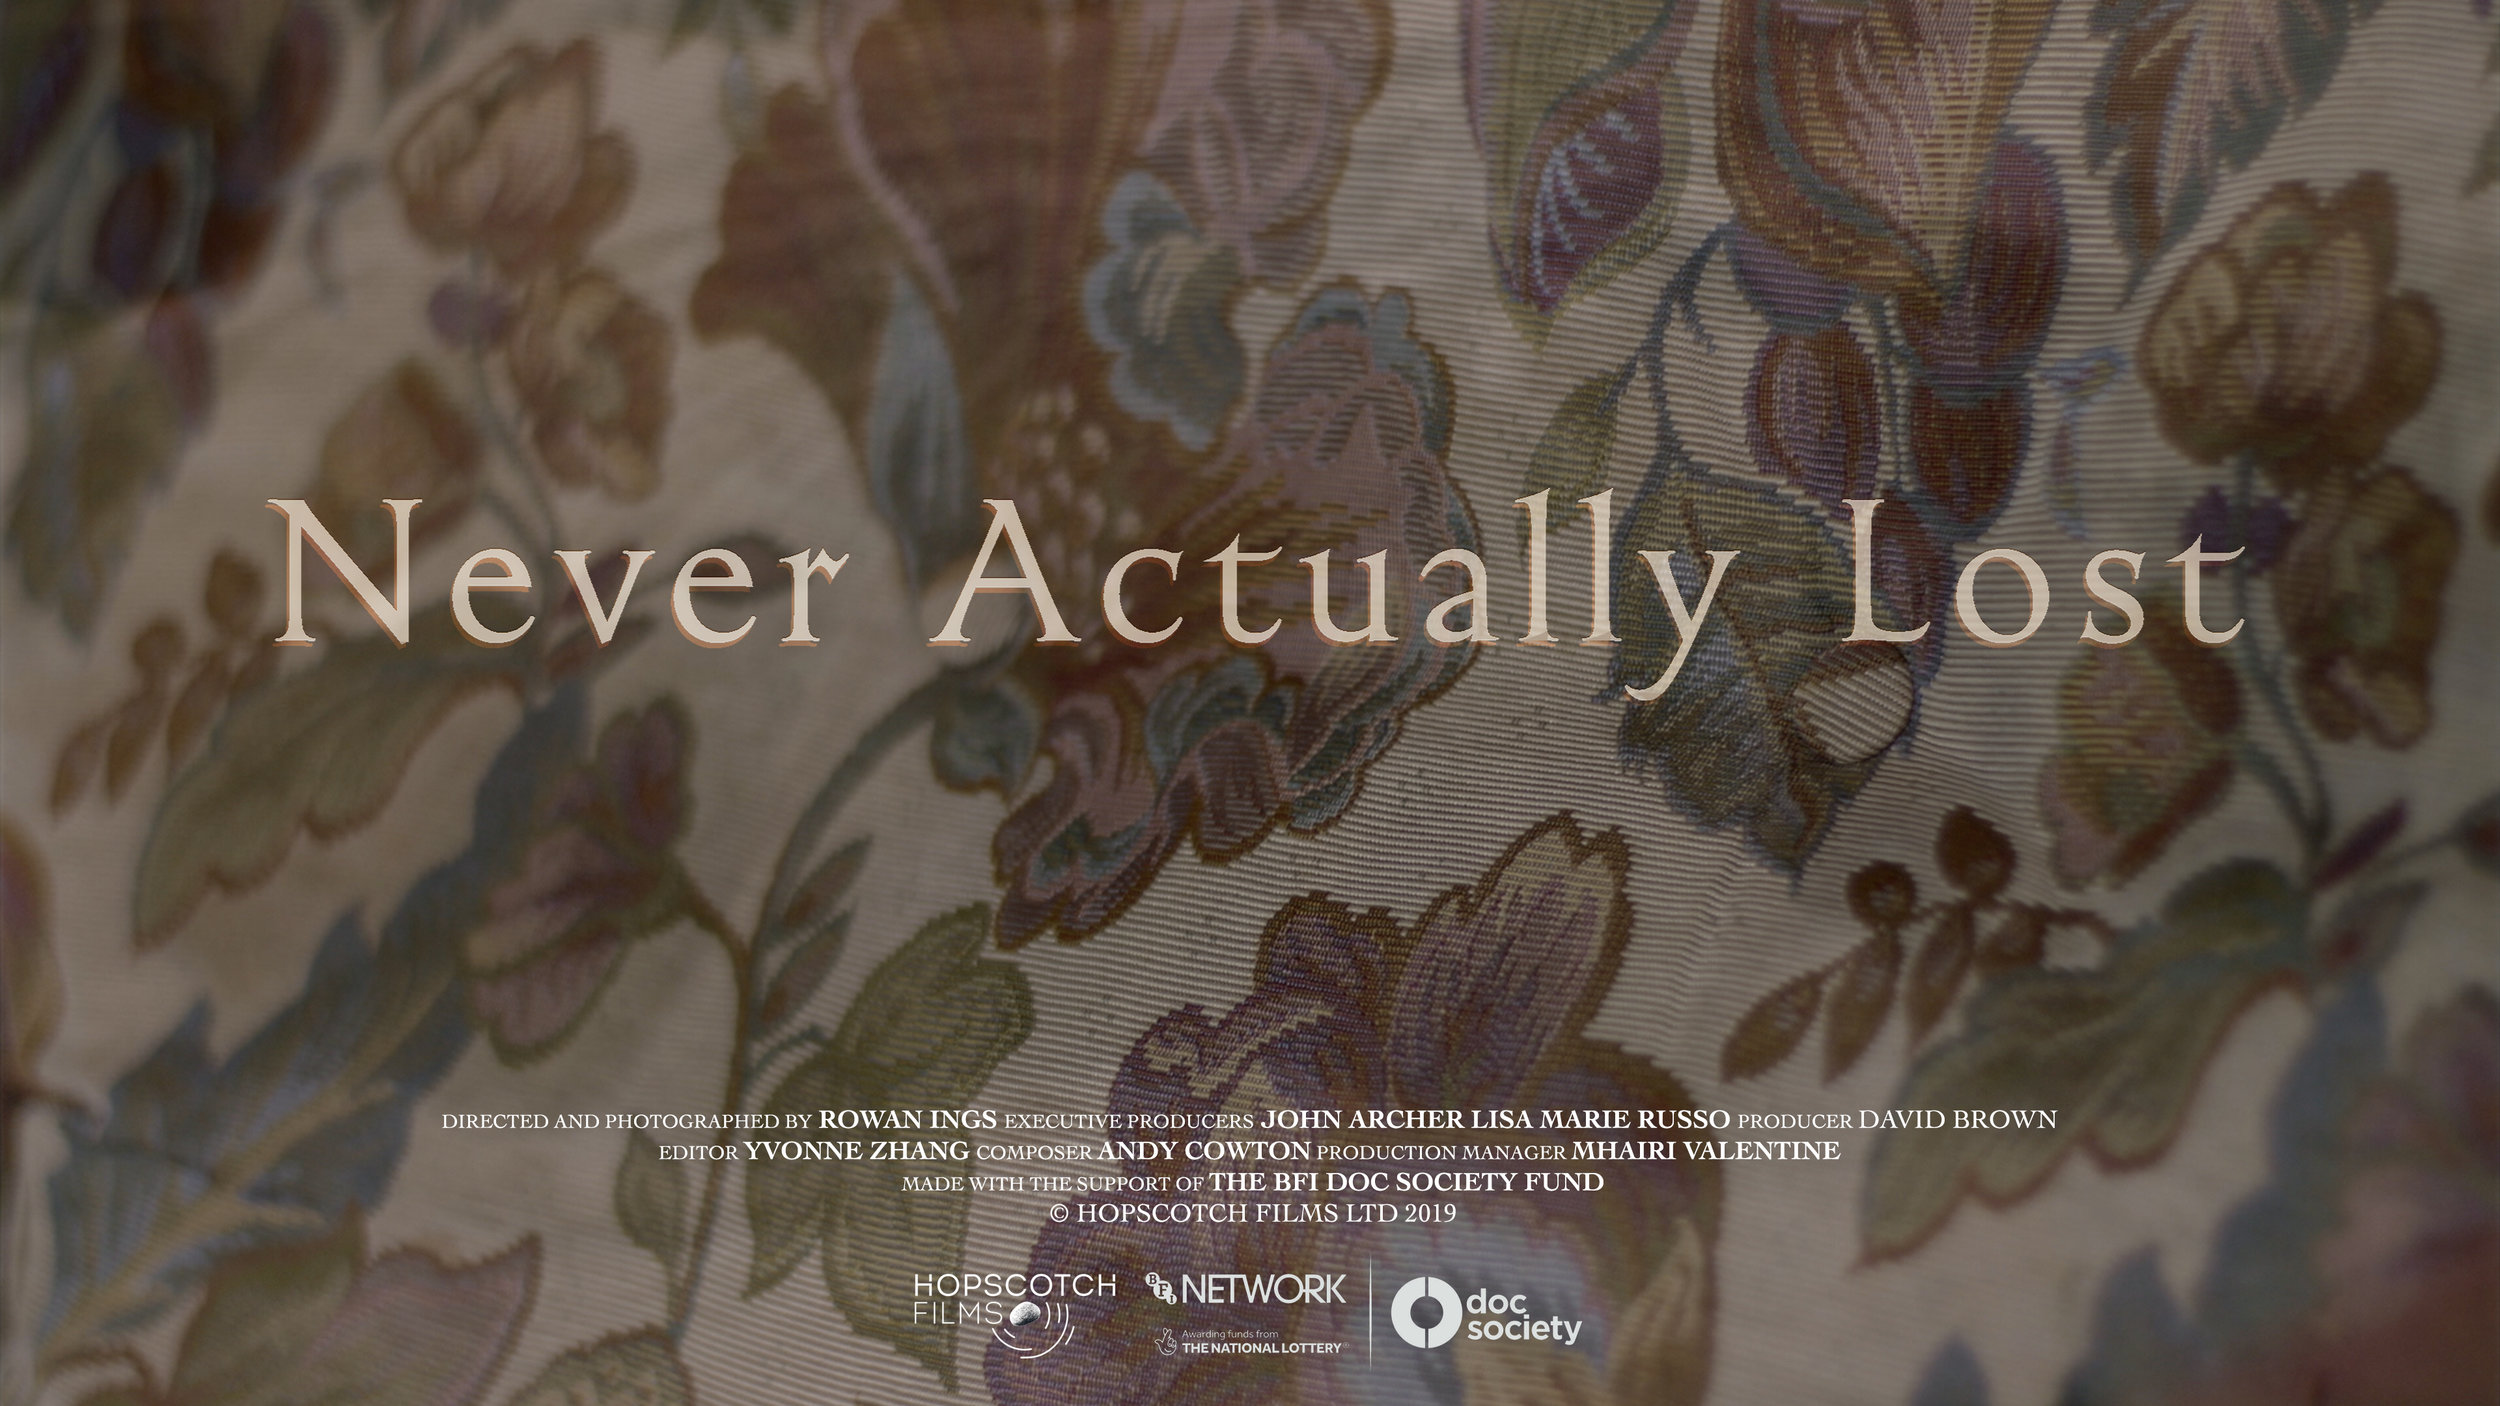 - It's with pleasure that we can say that Never Actually Lost will be screened at the Edinburgh International Film Festival. A beautiful short exploring memory and rediscovery - check it out!